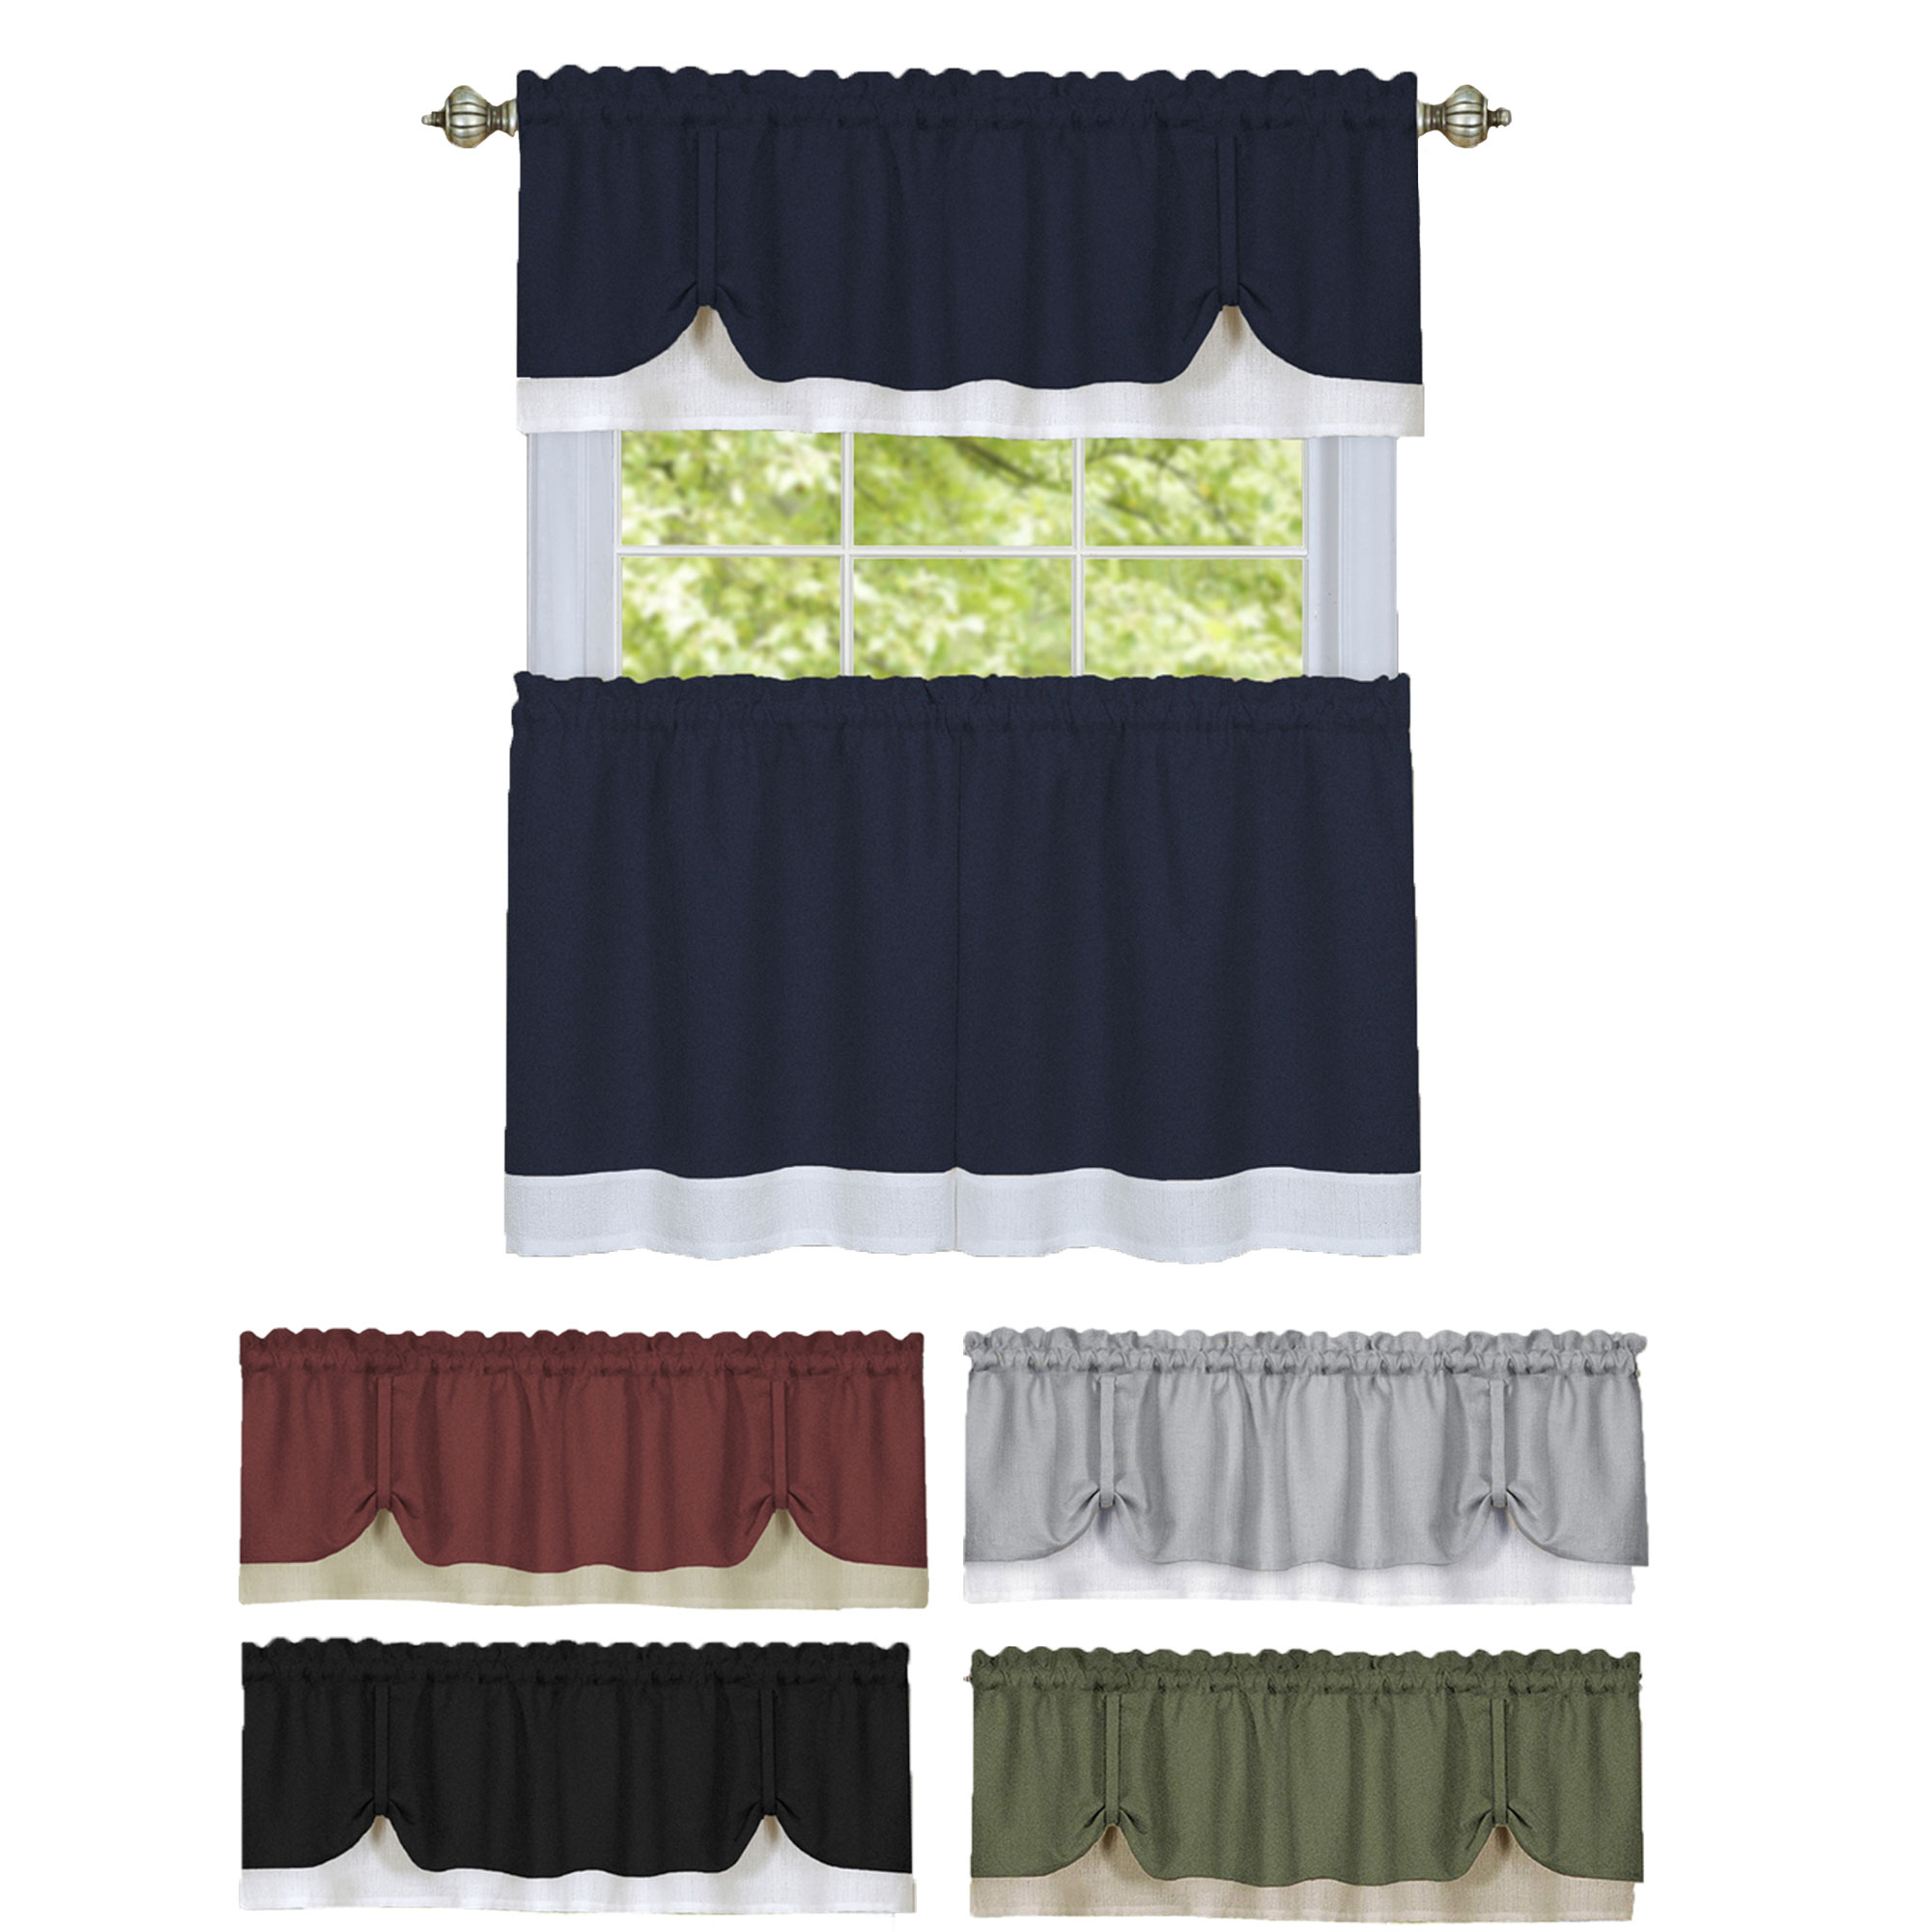 Details About Solid Window Curtain Double Layer Tier Pair & Valance Set For Cottage Ivy Curtain Tiers (View 7 of 20)